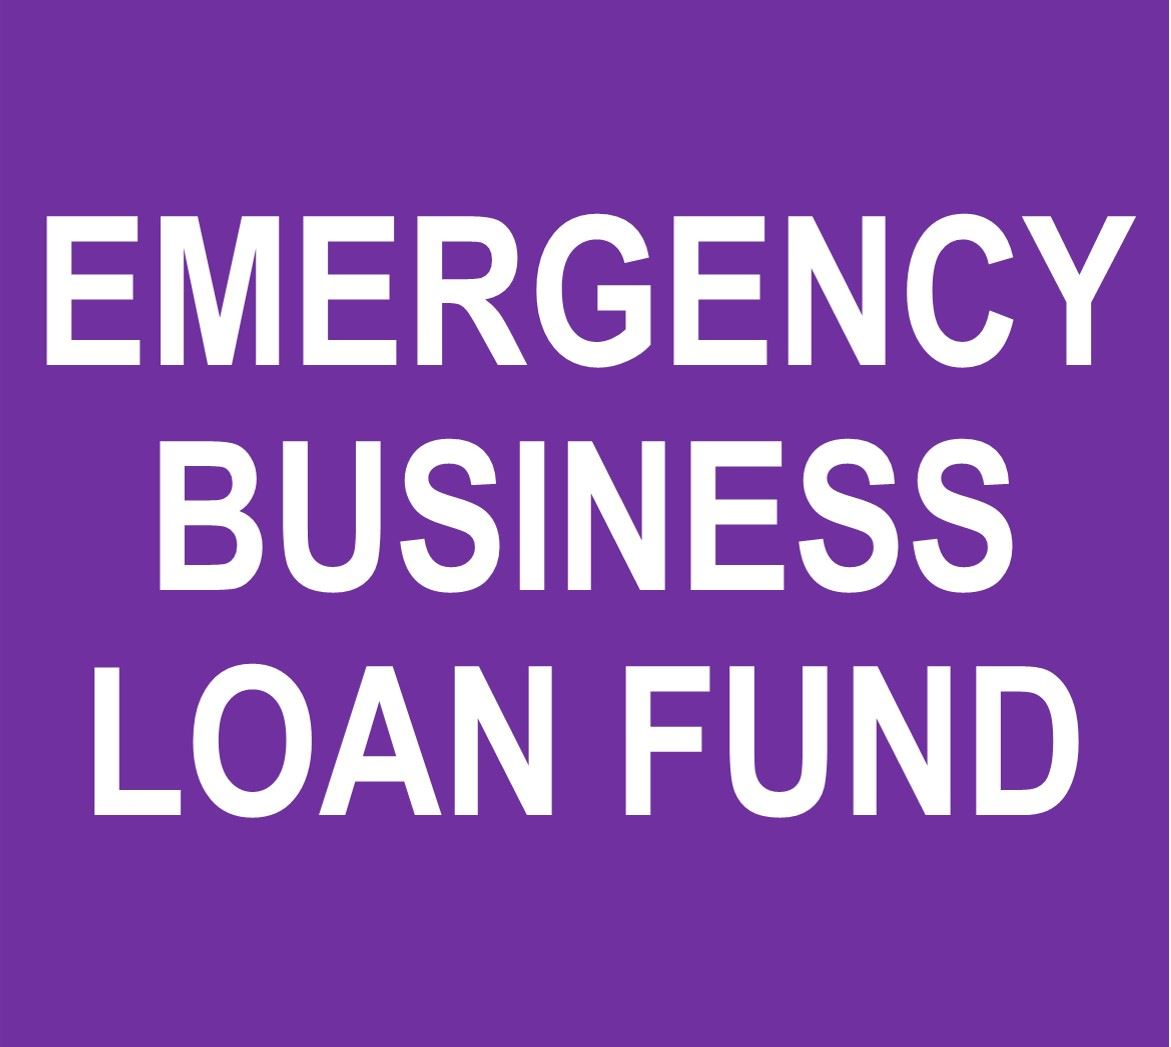 Emergency Business Loan Fund